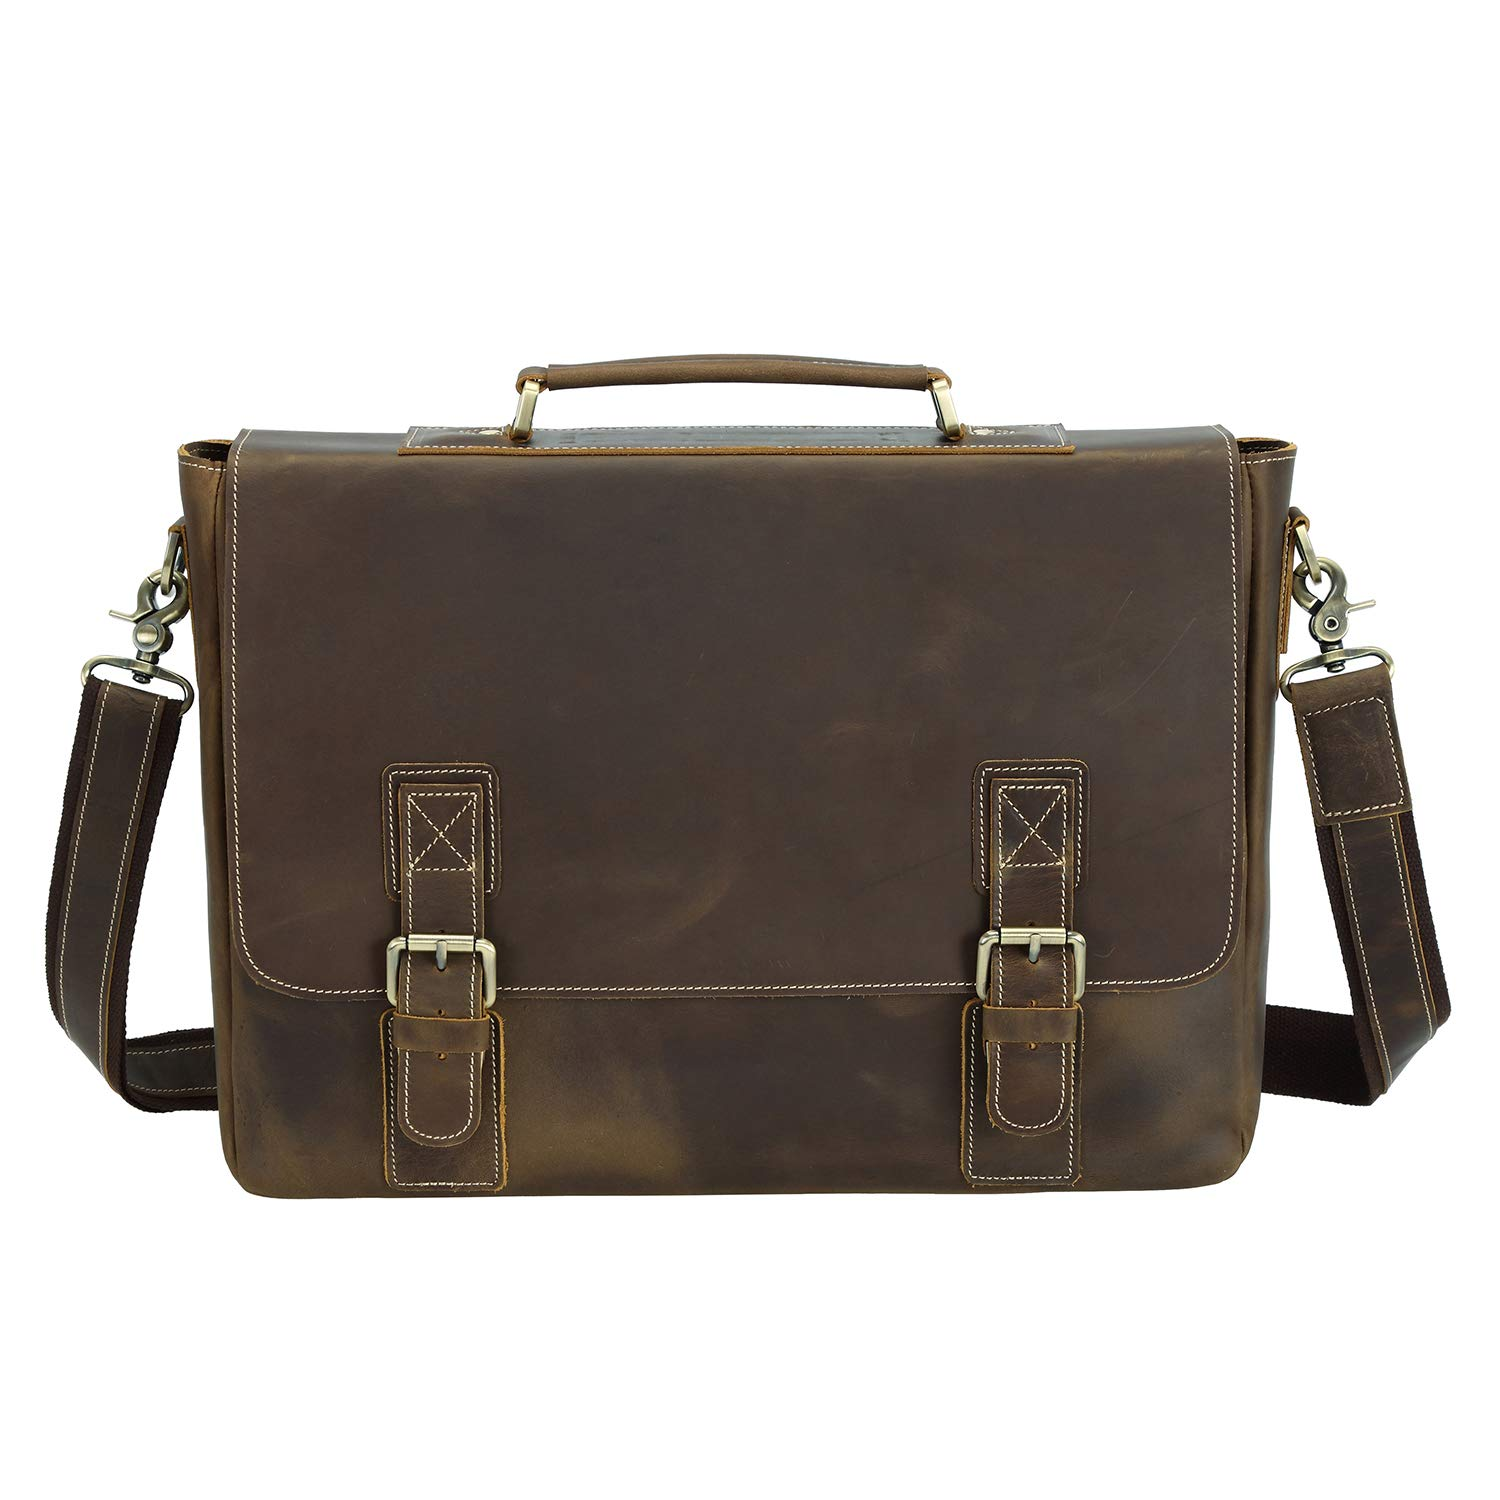 Texbo Men's 16 Inch Full Grain Cowhide Leather Laptop Briefcase Messenger Bag Tote by Texbo (Image #2)